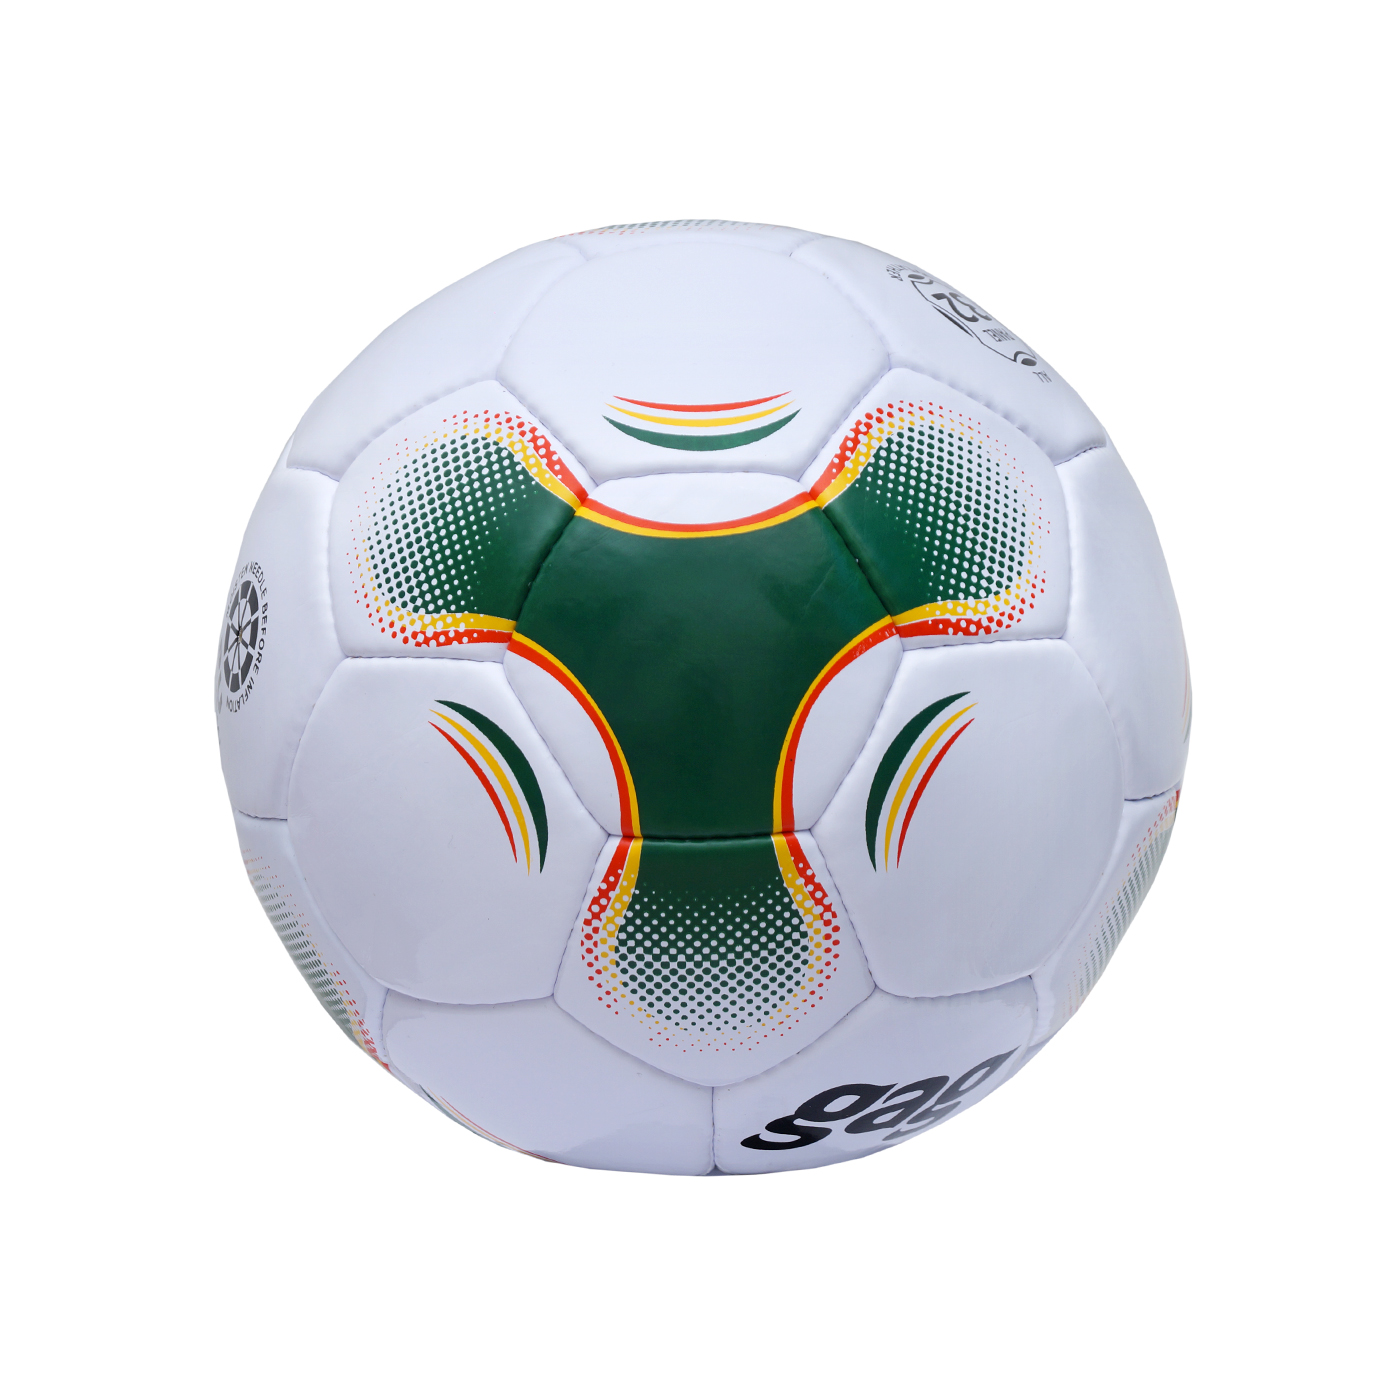 Customized Futsal Ball Manufacturers, Wholesale Suppliers